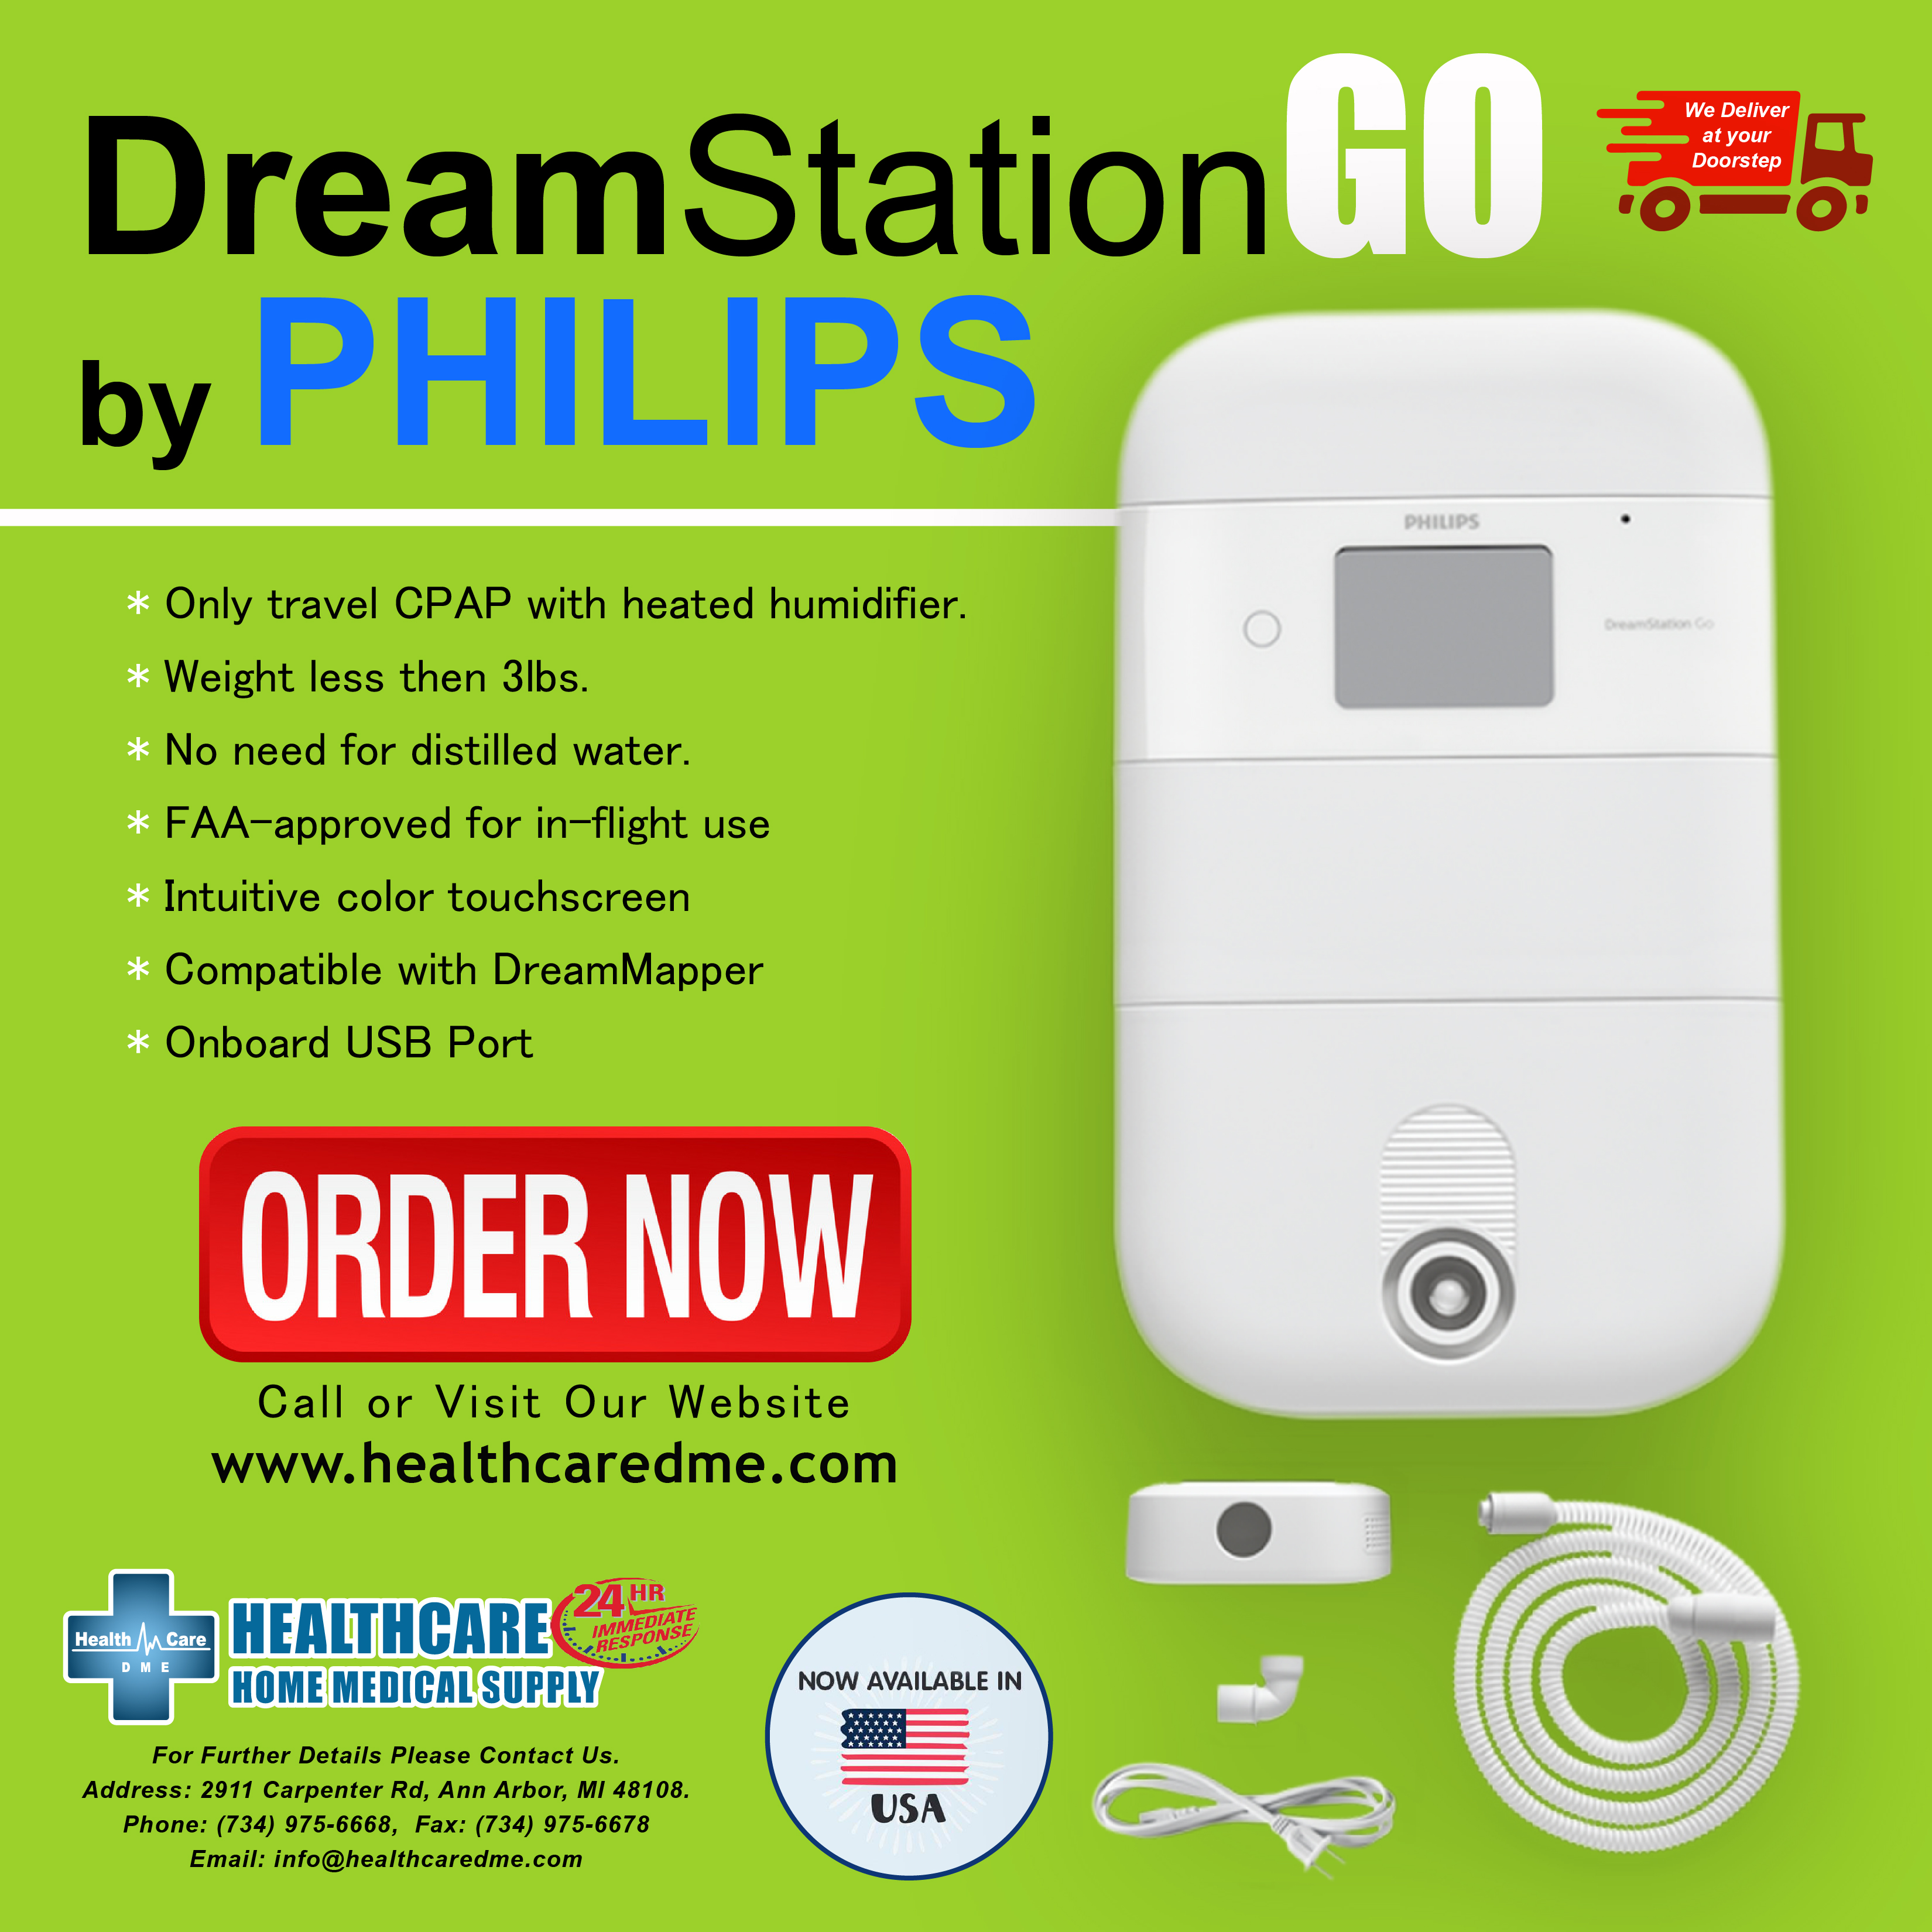 Philips Respironics DreamStation Go CPAP w/Heated Humidifier Michigan | USA